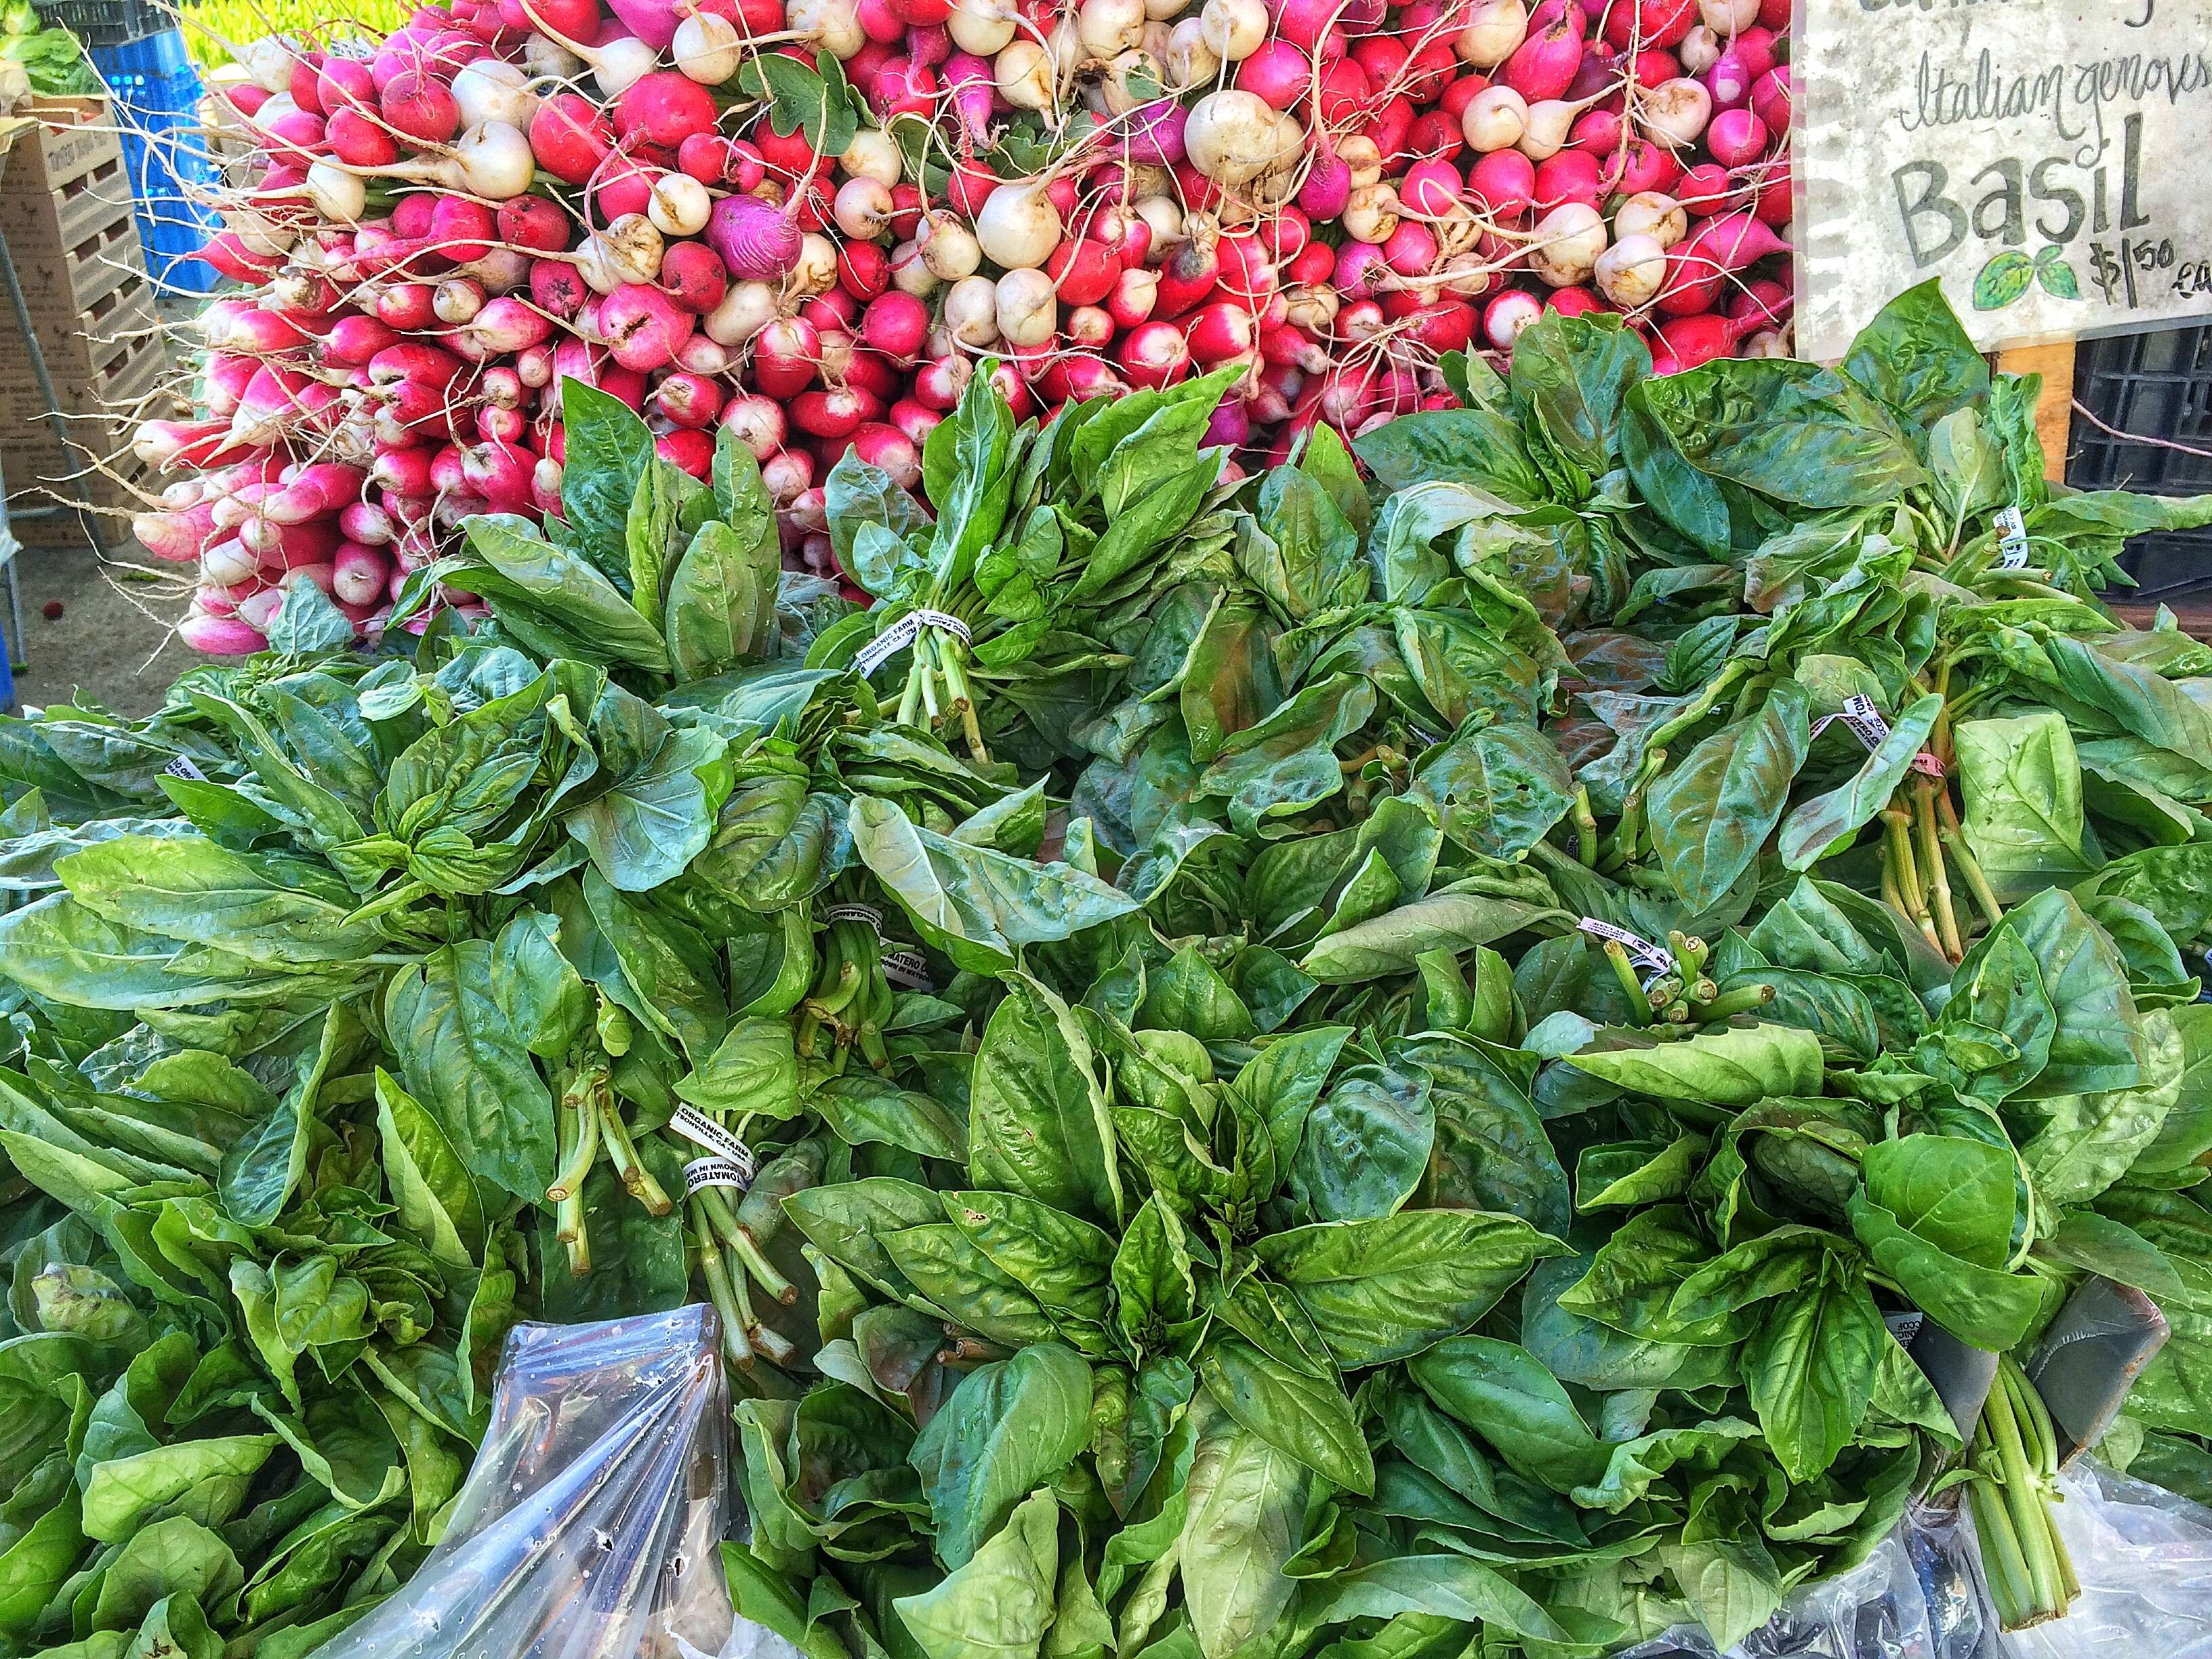 Tomatero Farms Basil